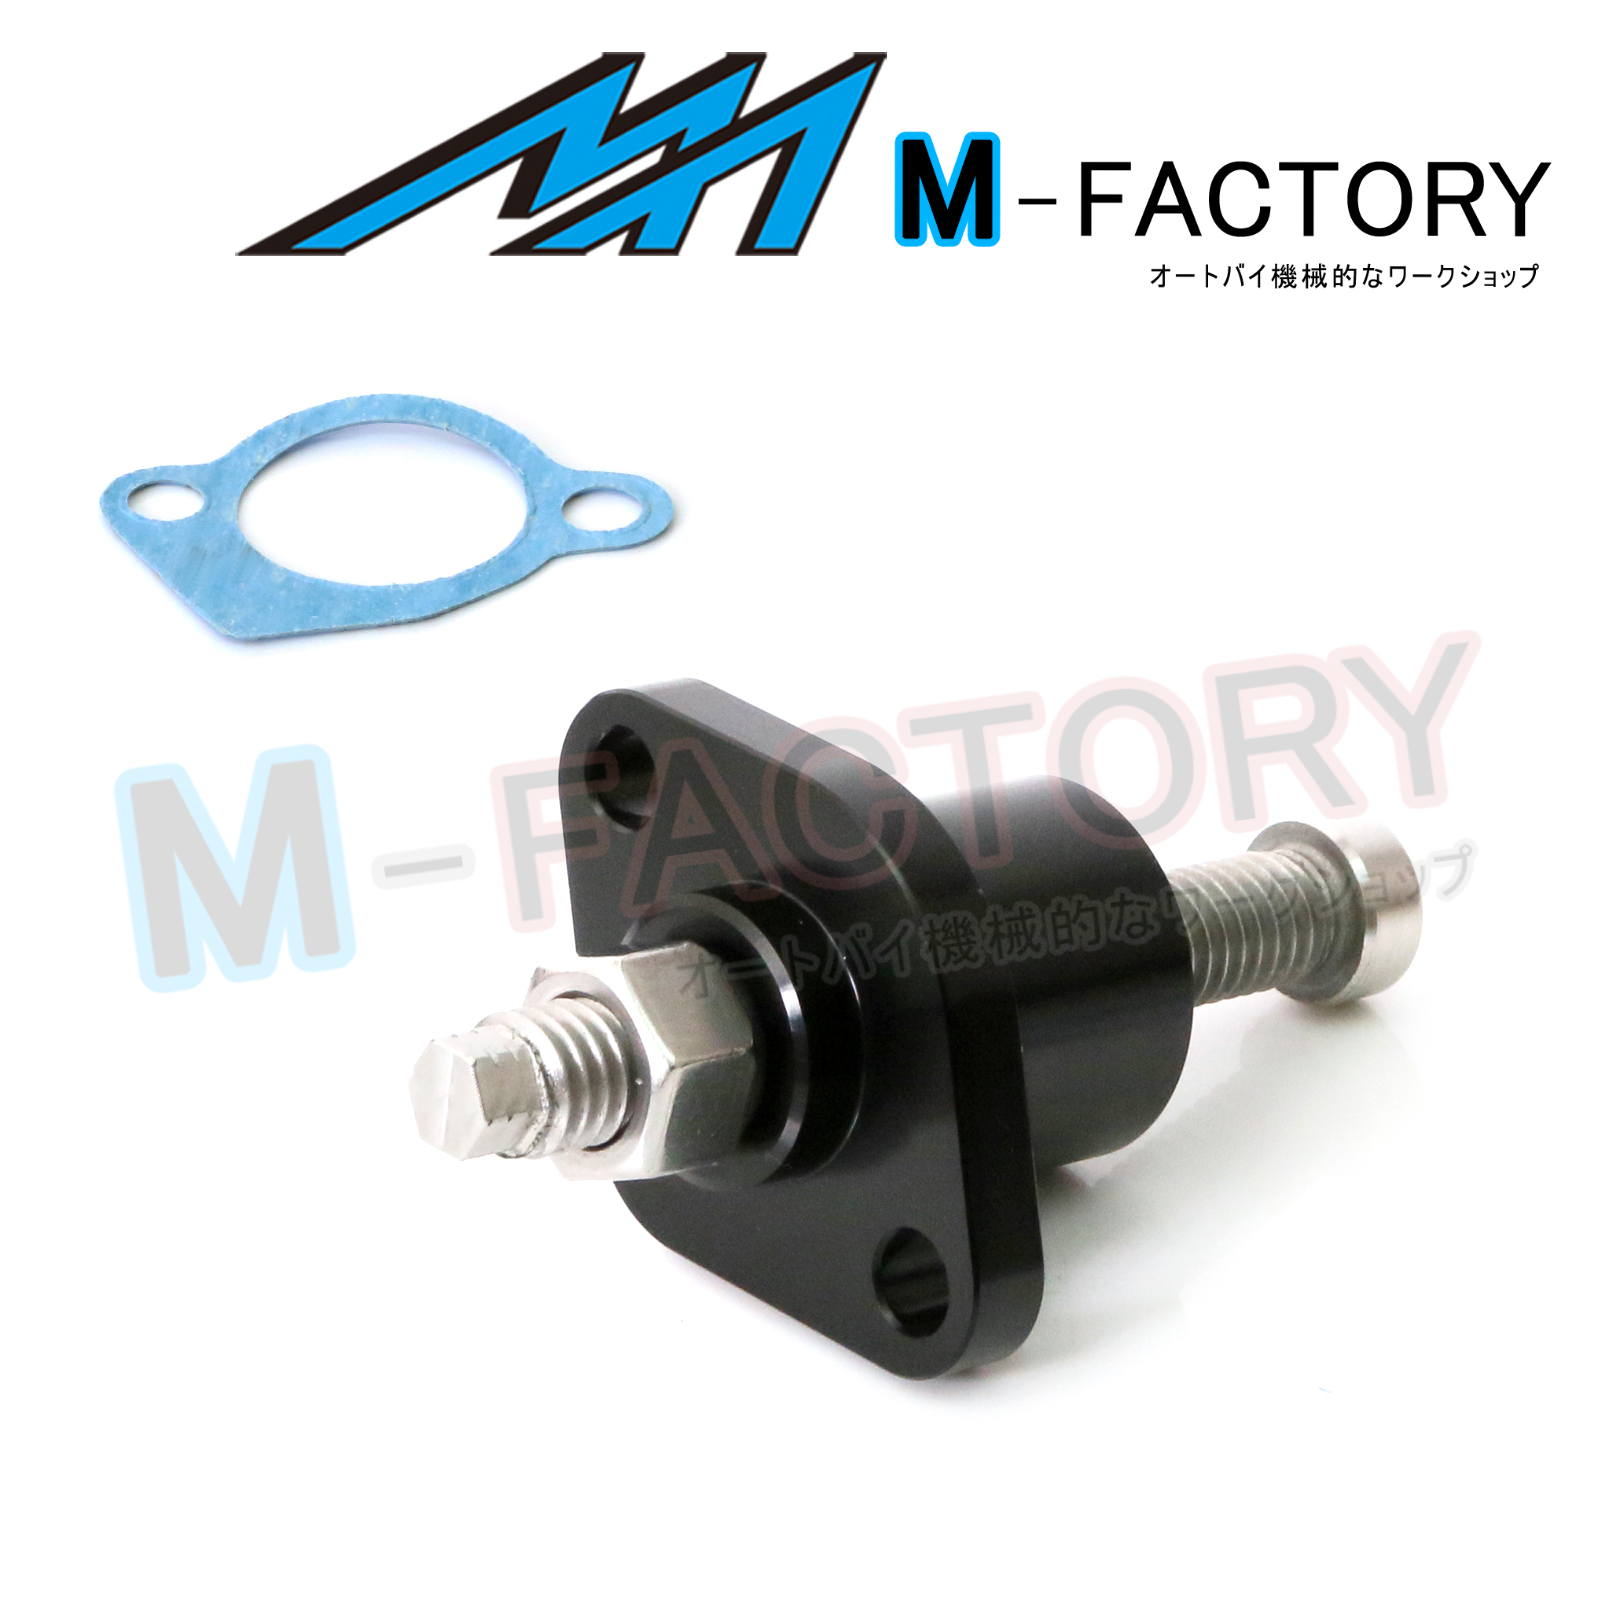 New Black Billet Manual Cam Chain Tensioner Fit Yamaha Yzf R6 06 17 Engine Parts Diagram 07 08 09 10